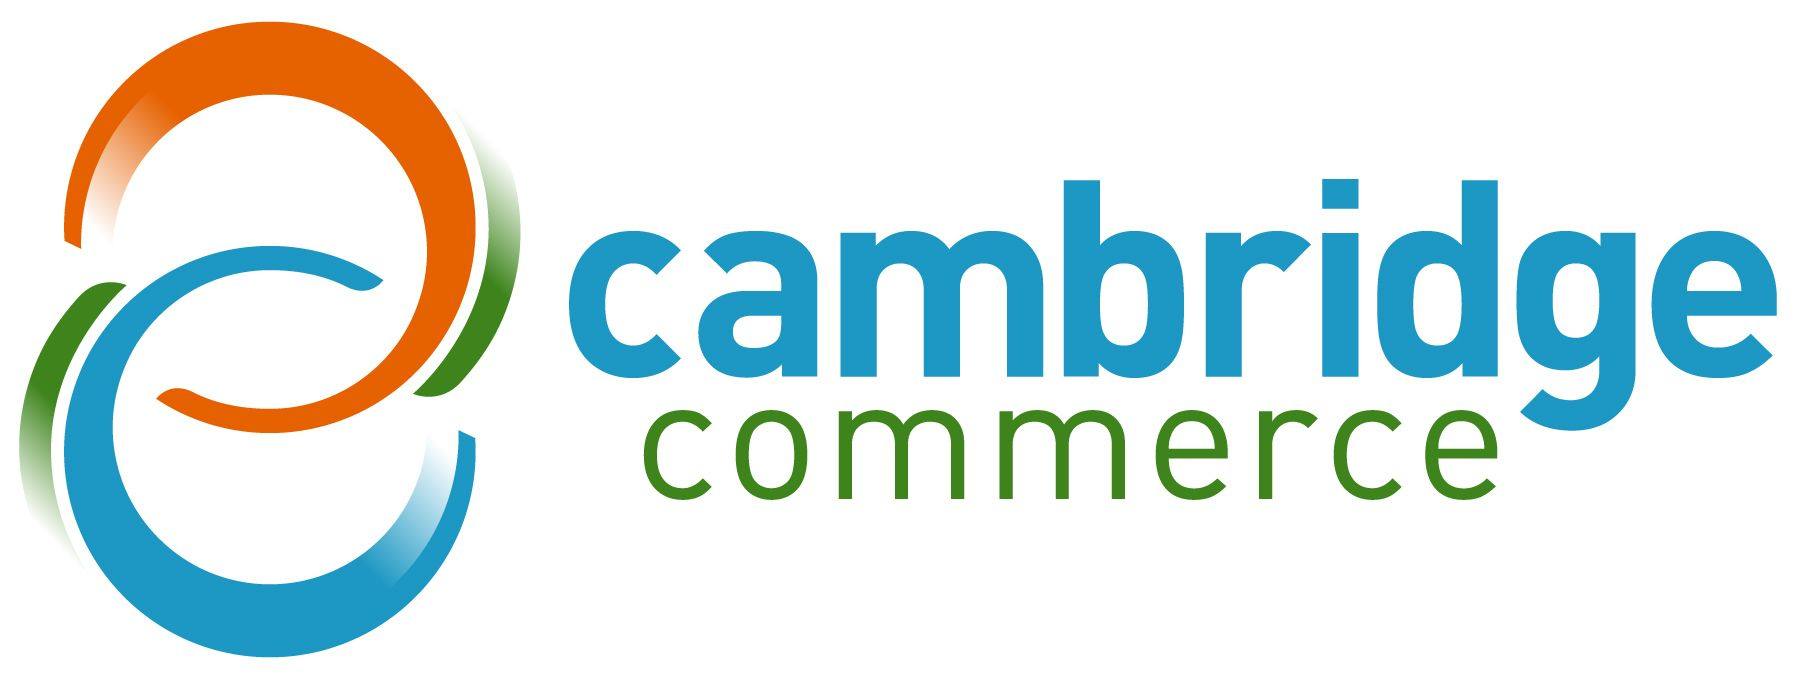 Cambridgecommerce